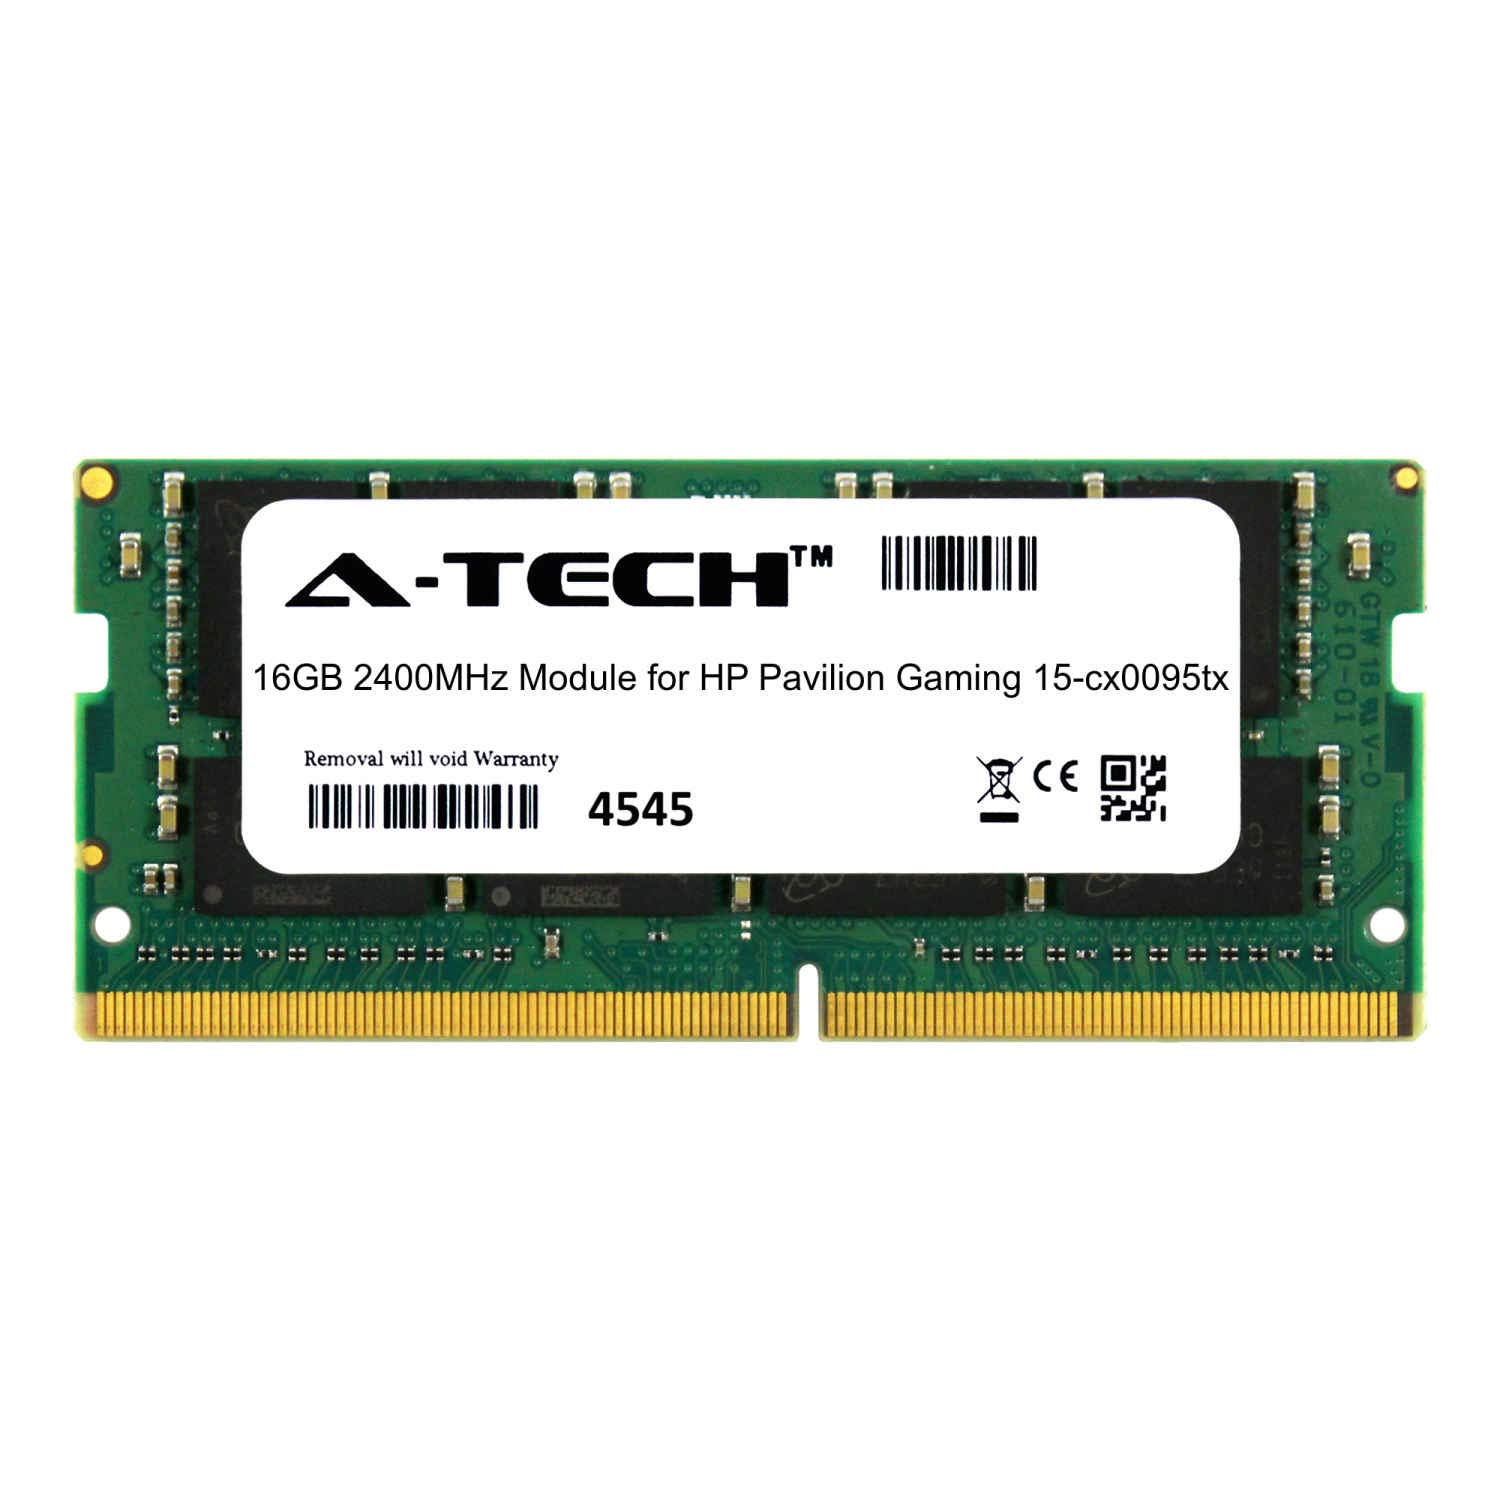 A-Tech 16GB Module for HP Pavilion Gaming 15-cx0095tx Laptop & Notebook Compatible DDR4 2400Mhz Memory Ram (ATMS305838A25831X1)